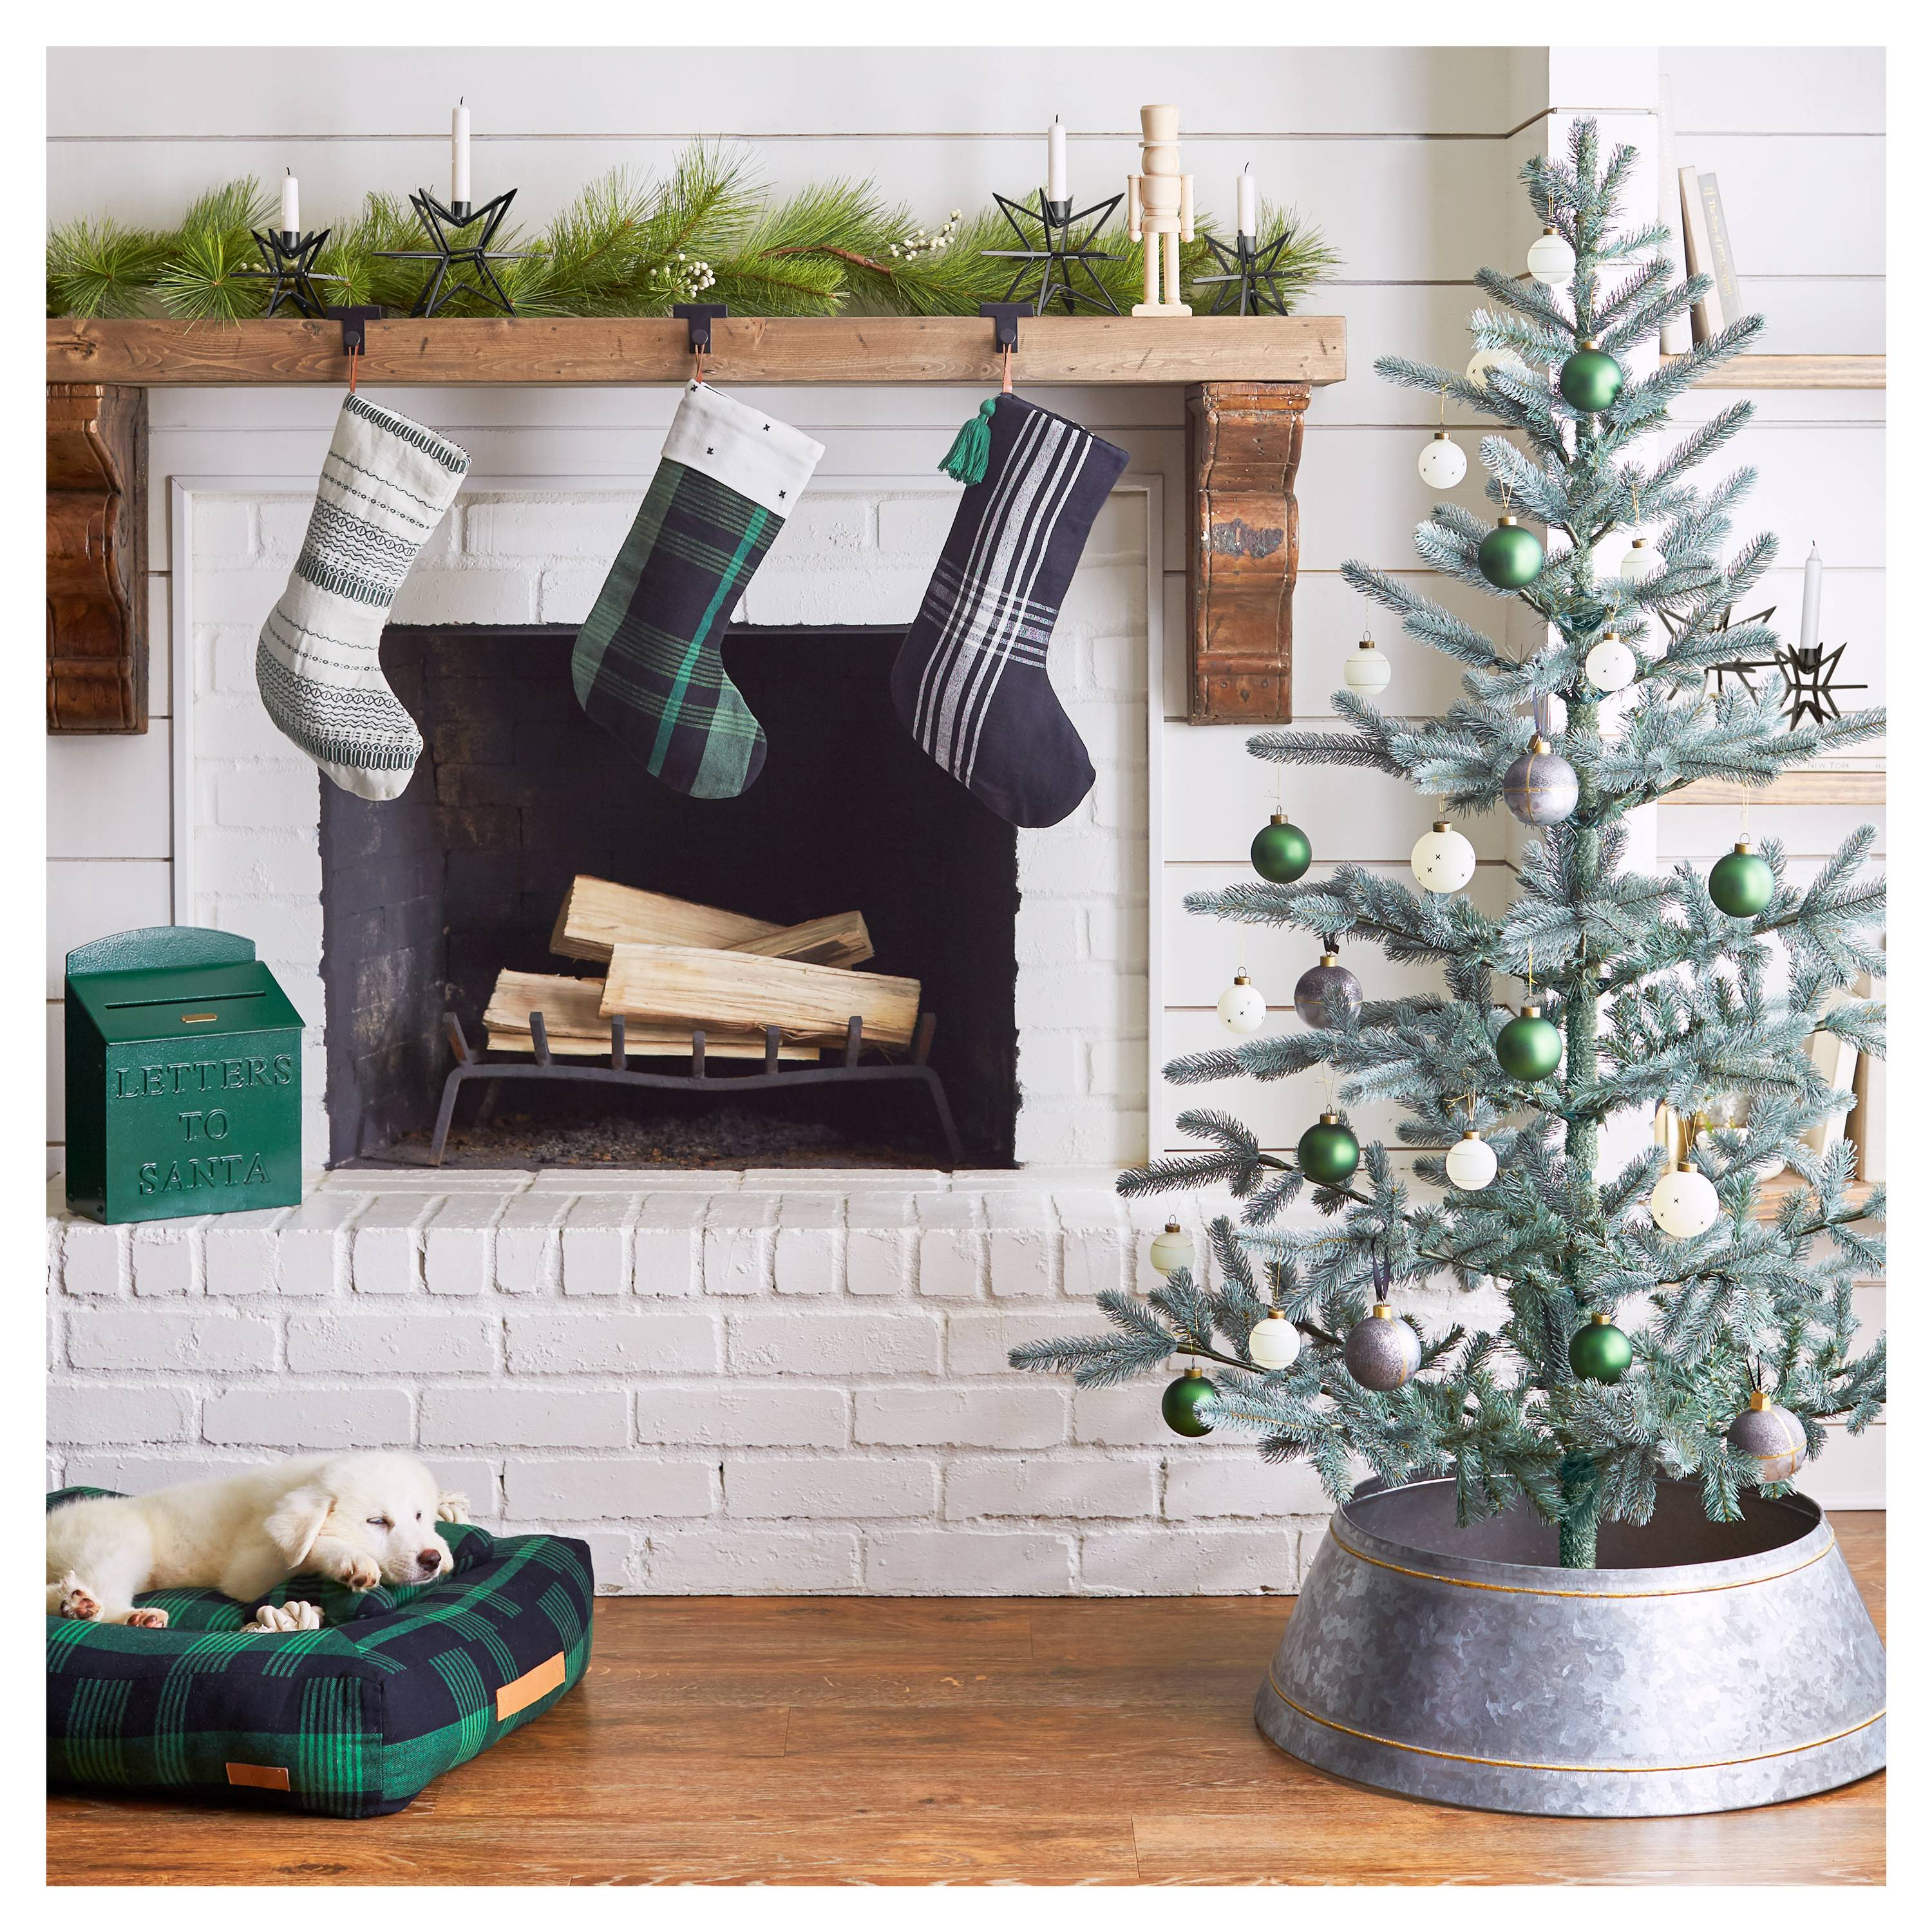 Target Wreaths Home Decor: Interior Design Inspiration And Ideas